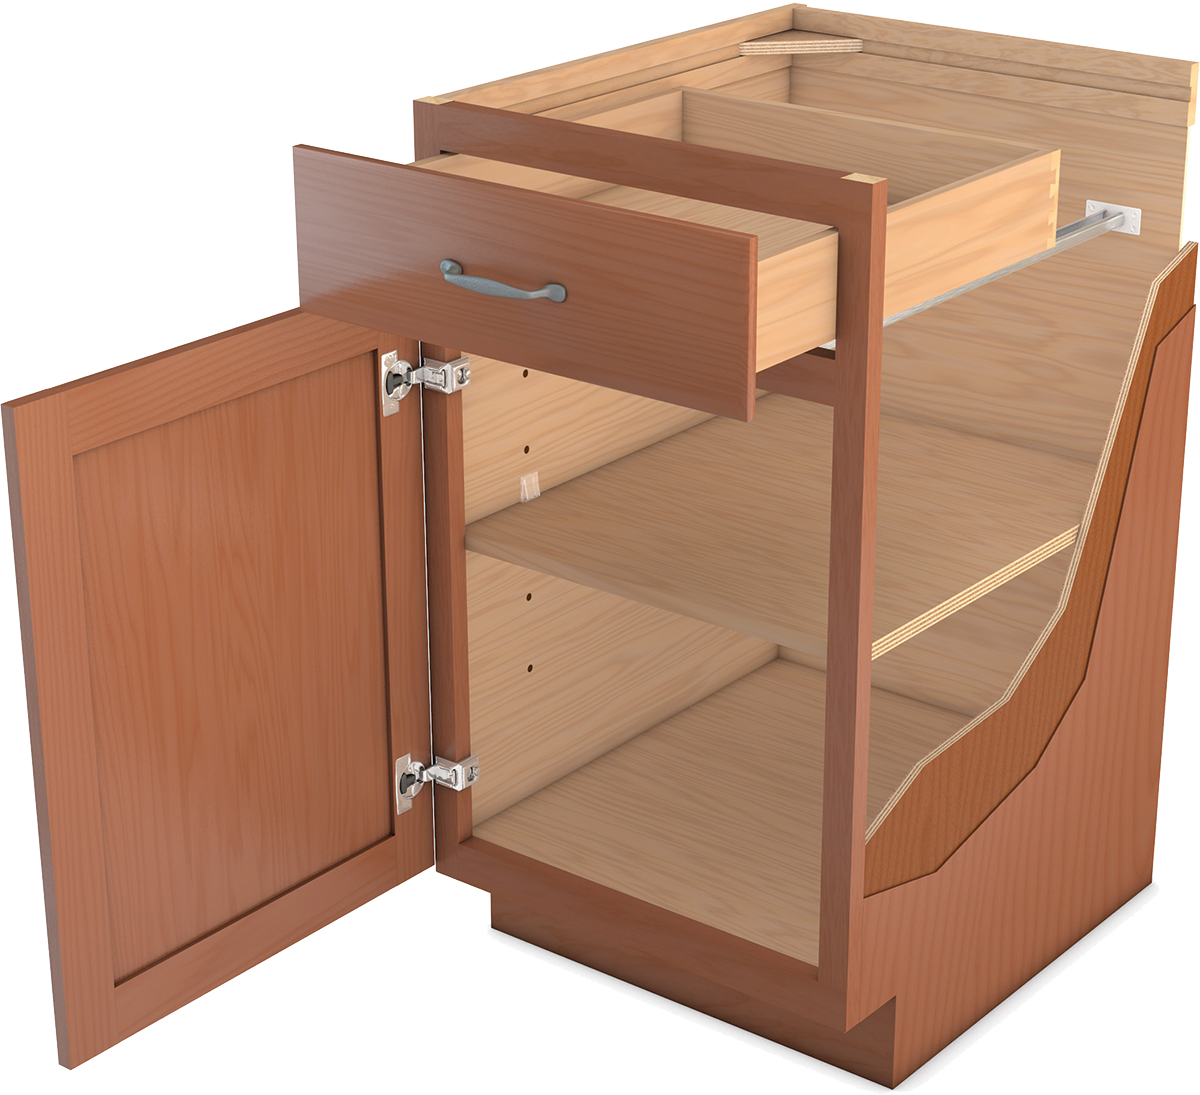 Cabinetry That's Built To Last